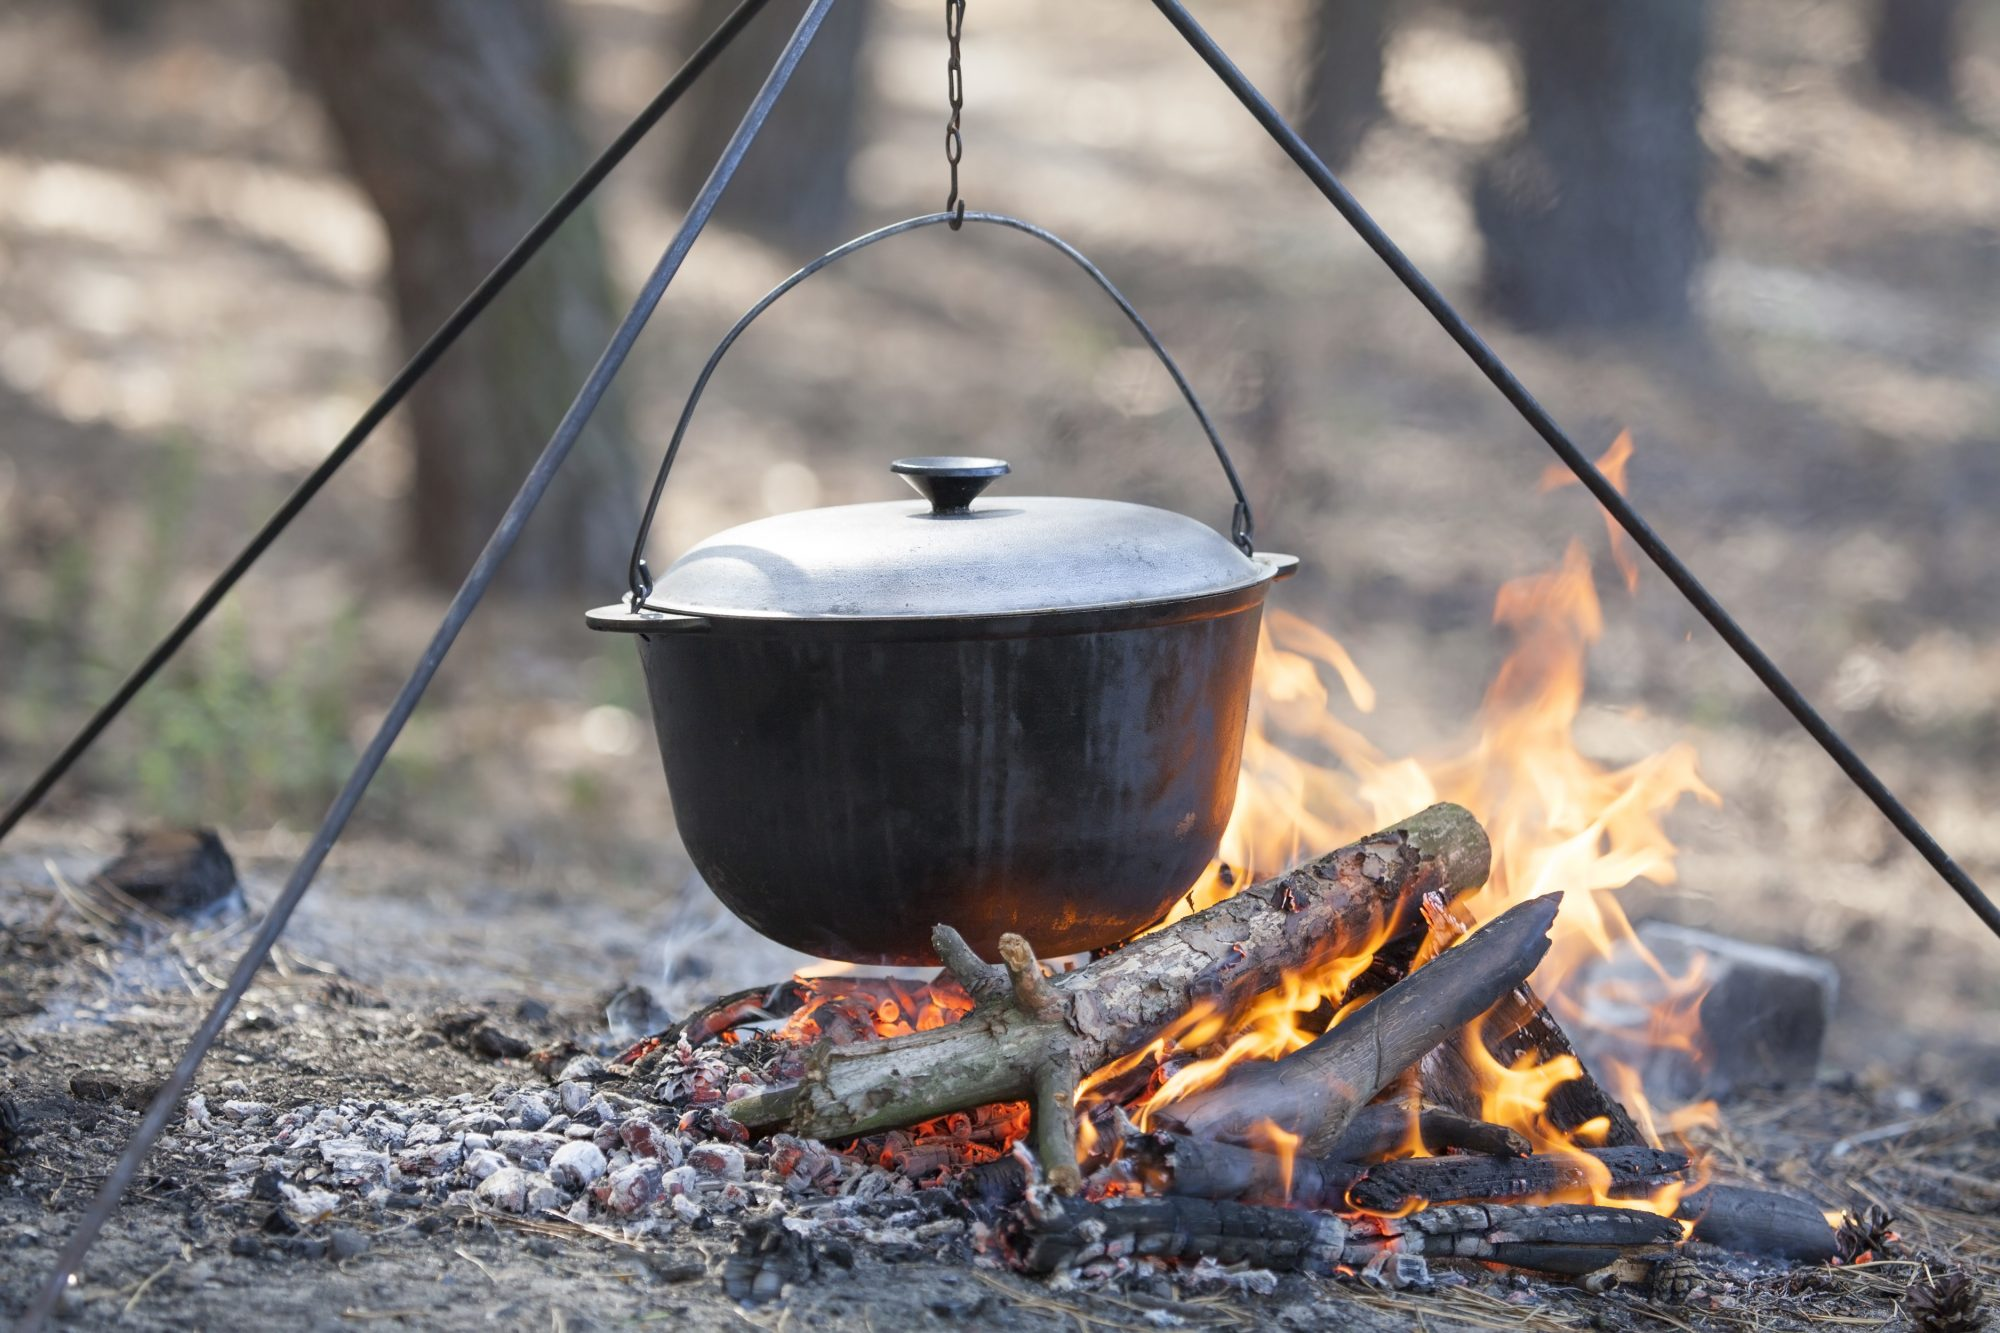 dutch oven cooking over campfire